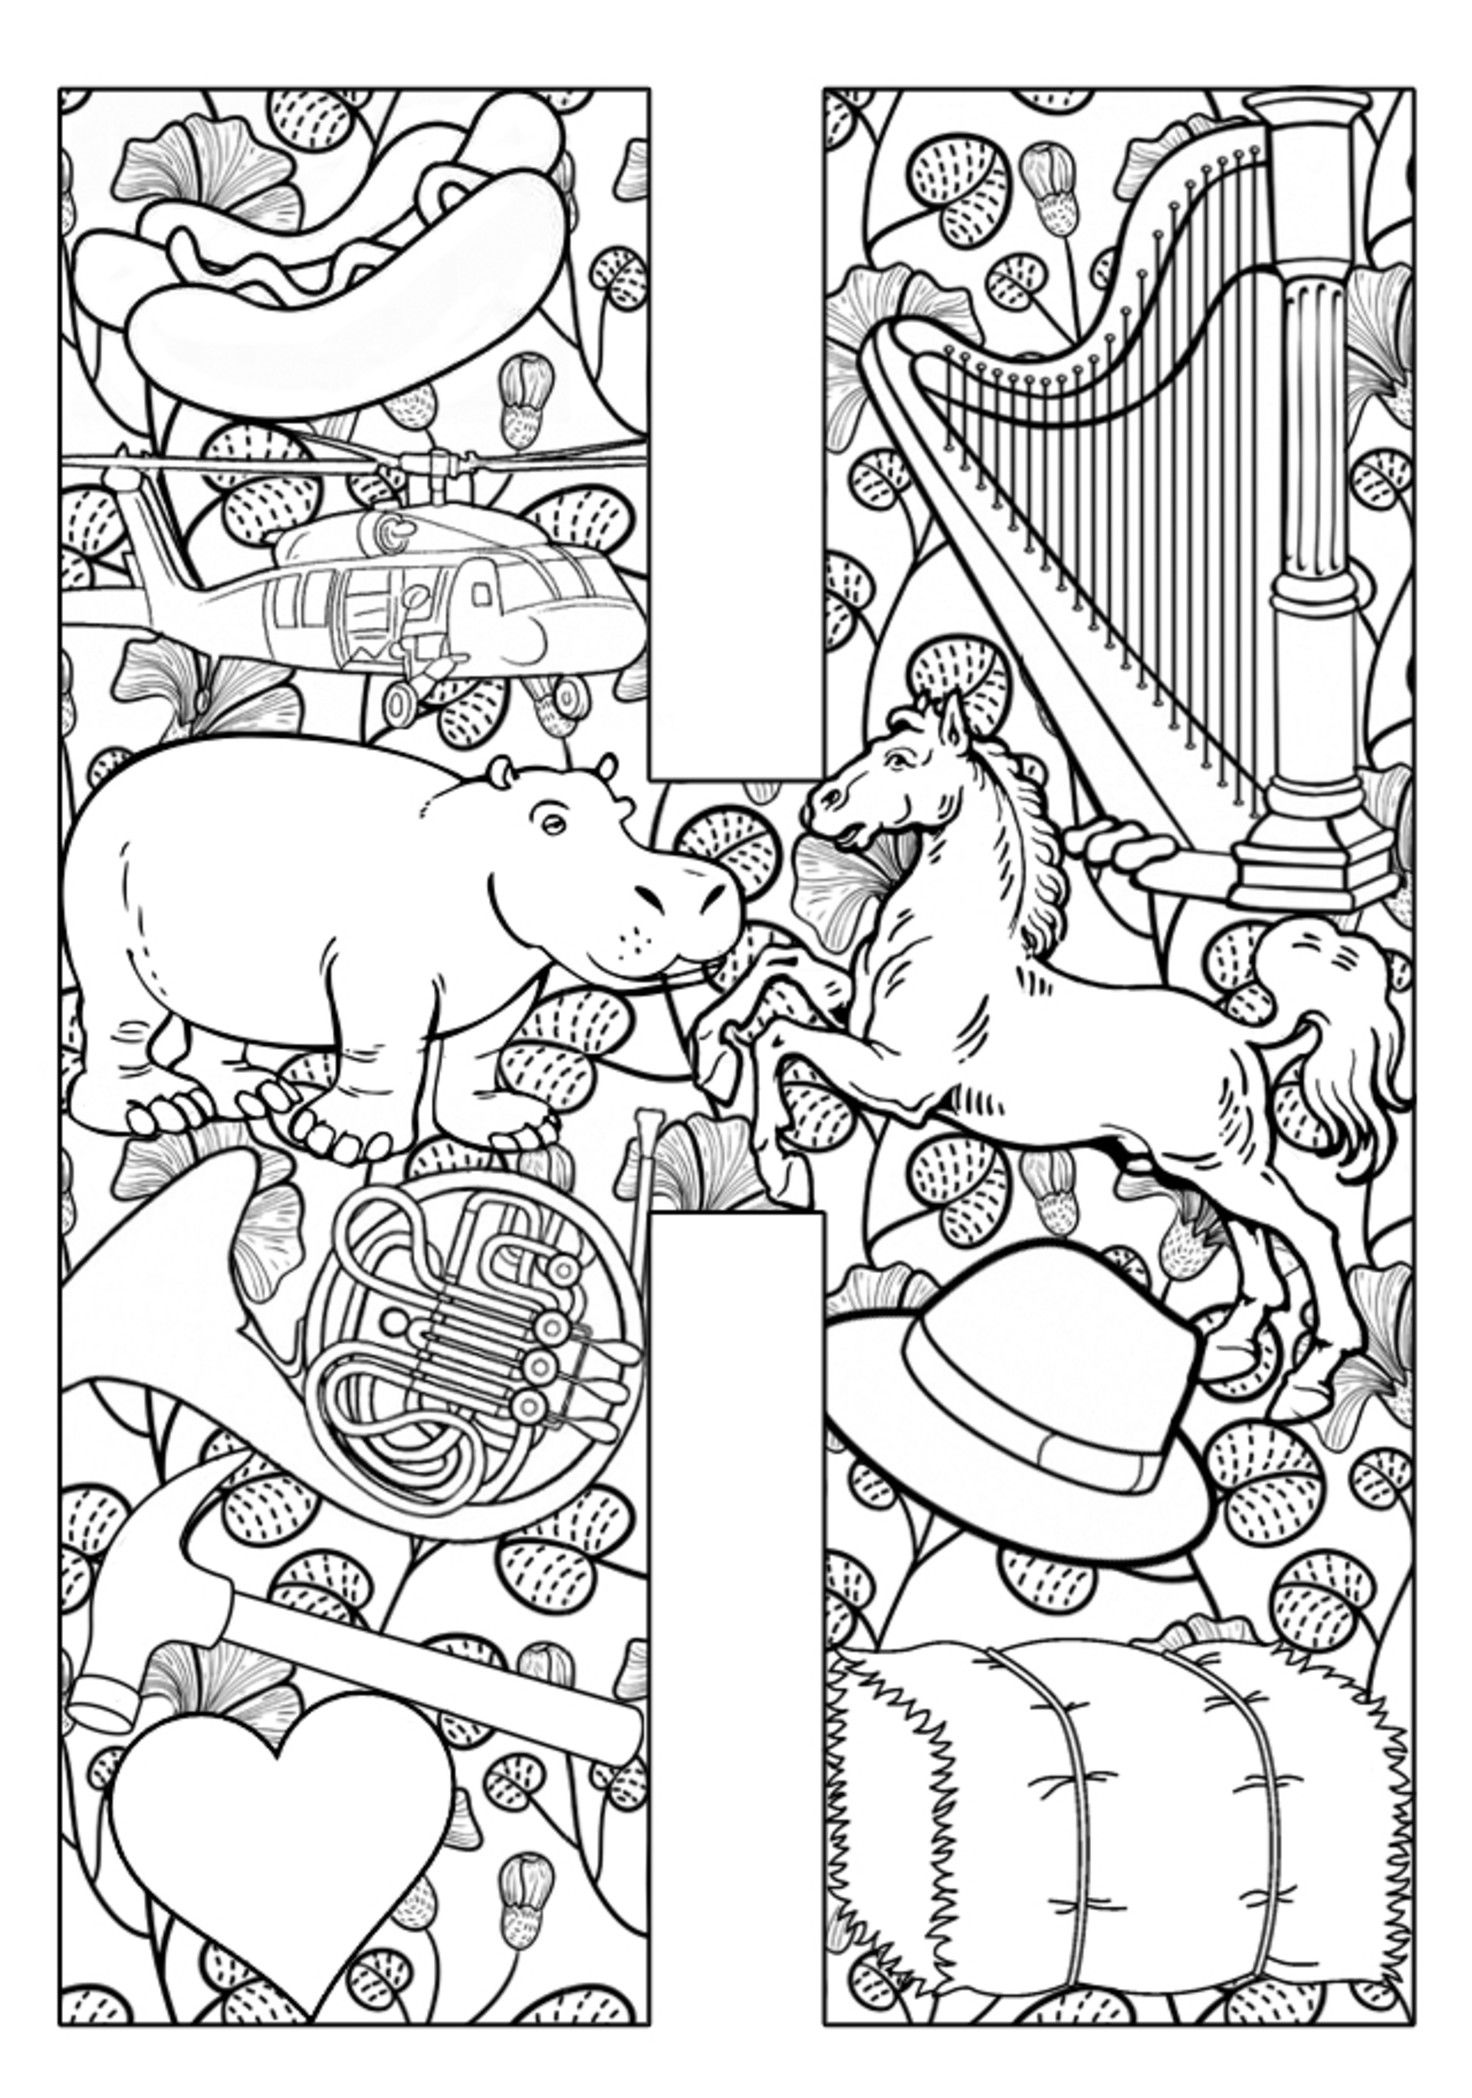 These Free Printables Will Make Learning The Abcs Fun For Kids Coloring Pages Alphabet Coloring Pages Free Printable Coloring Pages